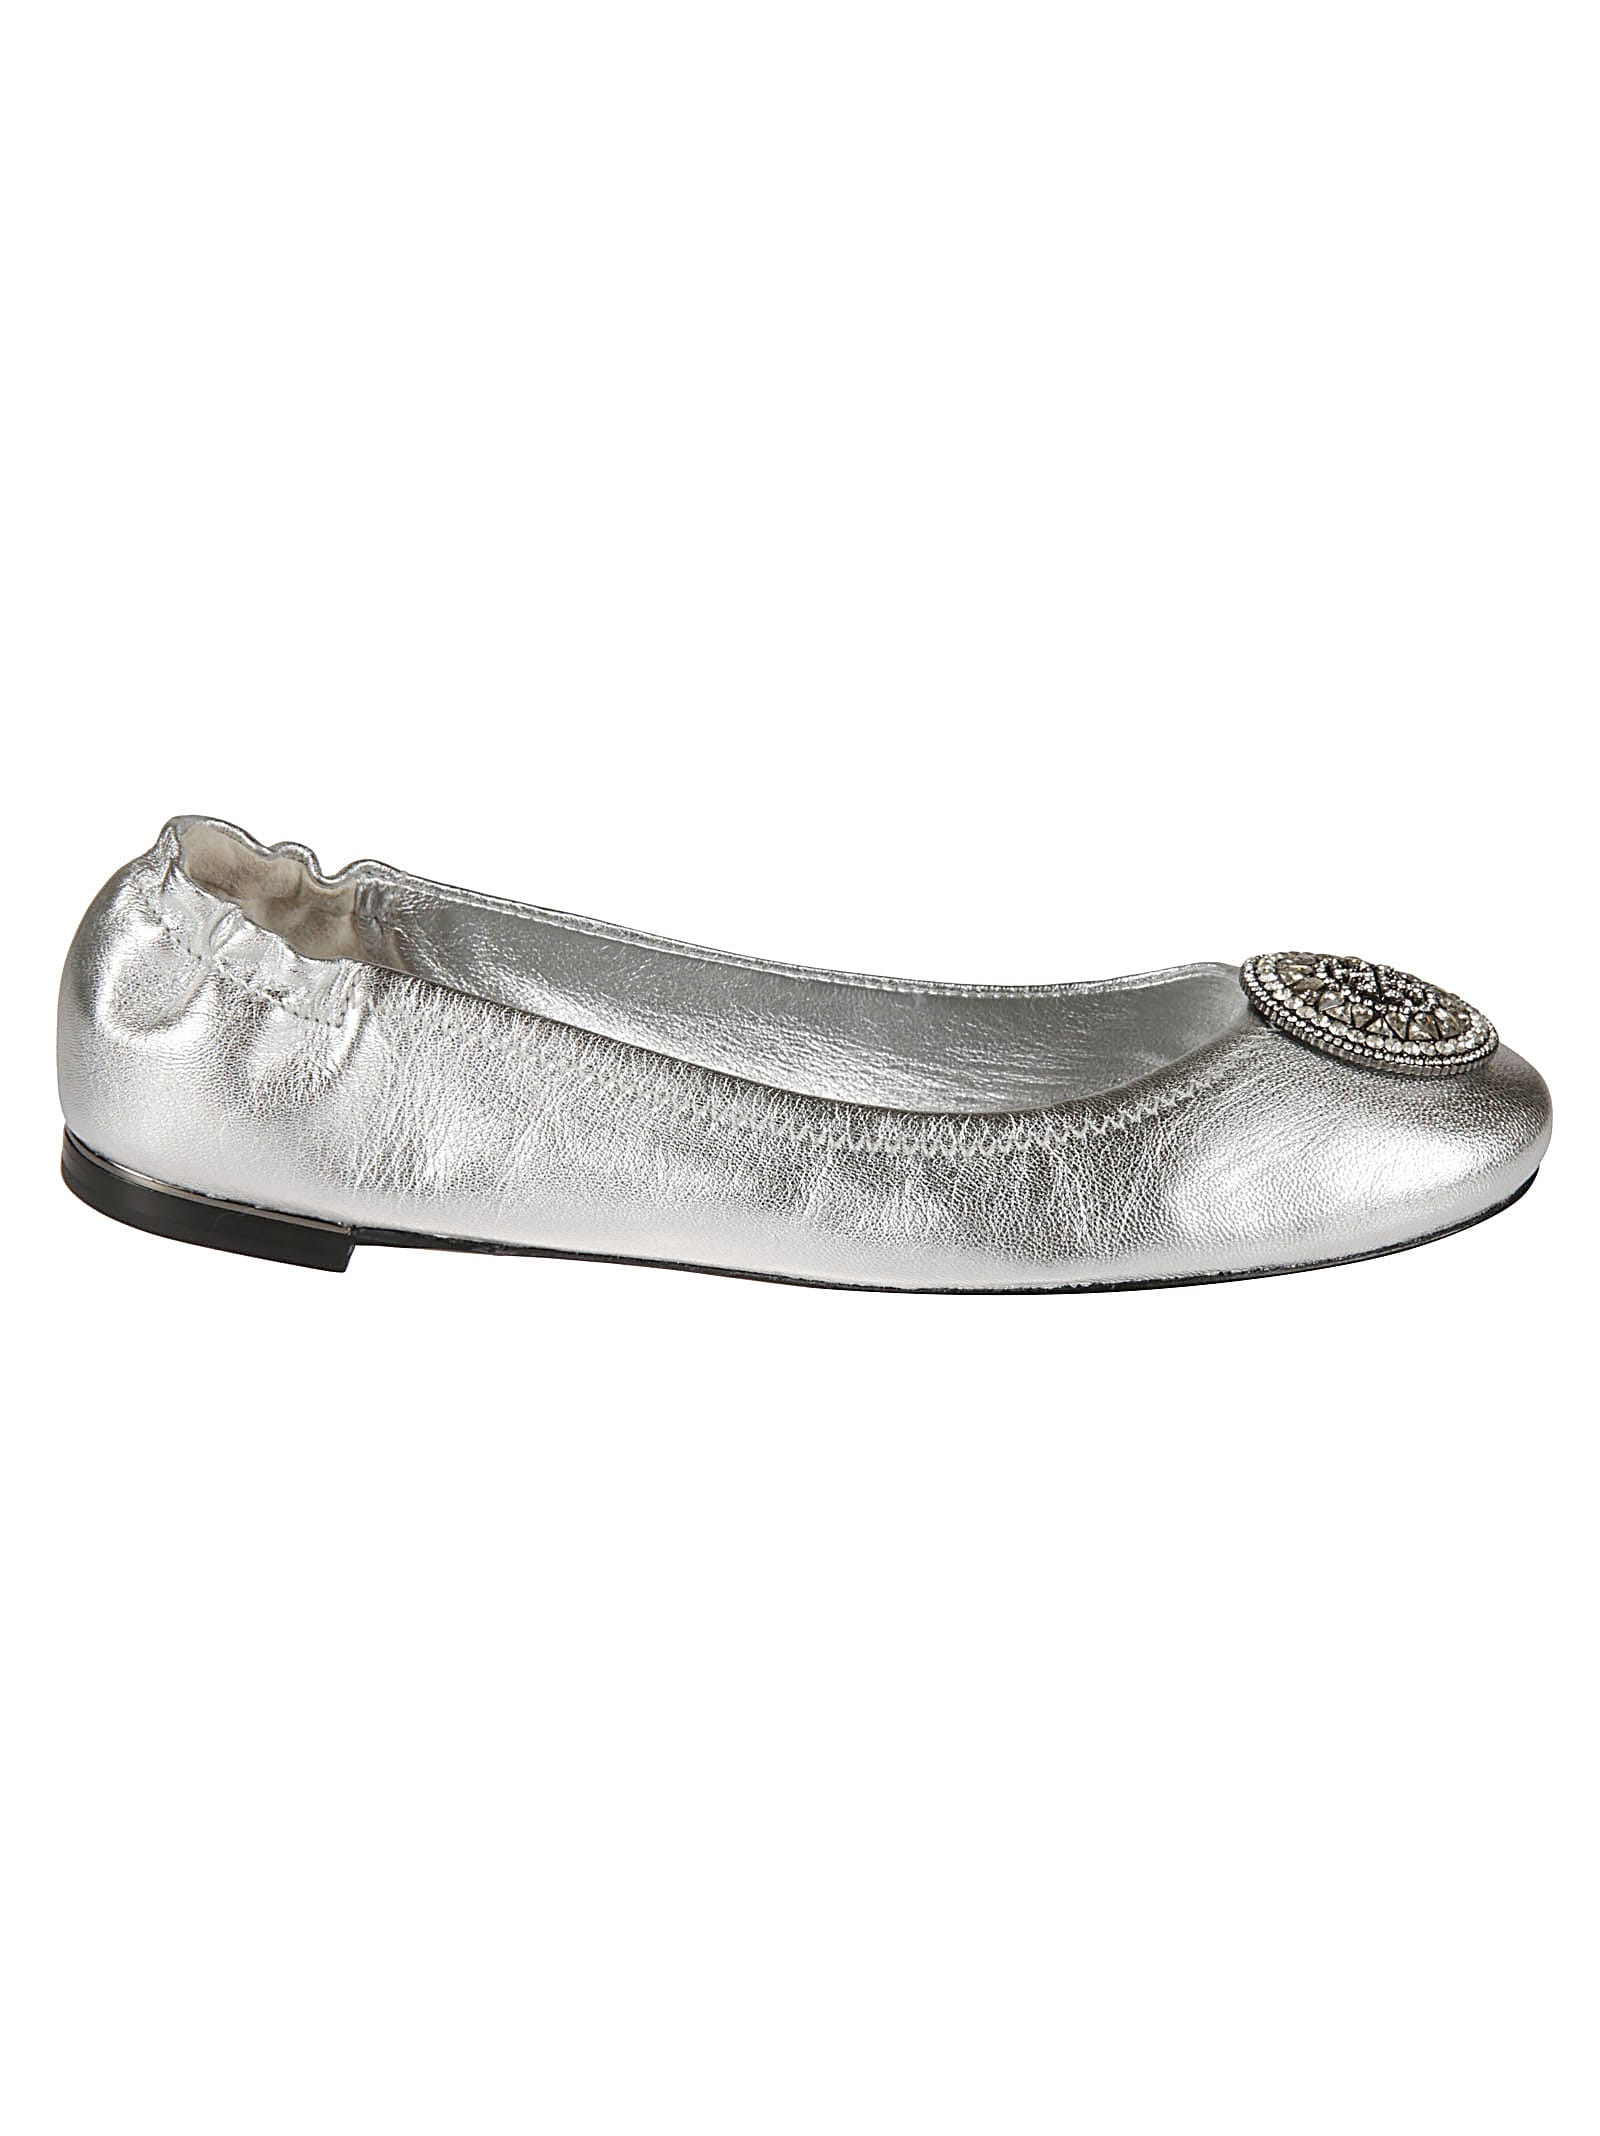 Buy Tory Burch Crystal Logo Ballerinas online, shop Tory Burch shoes with free shipping